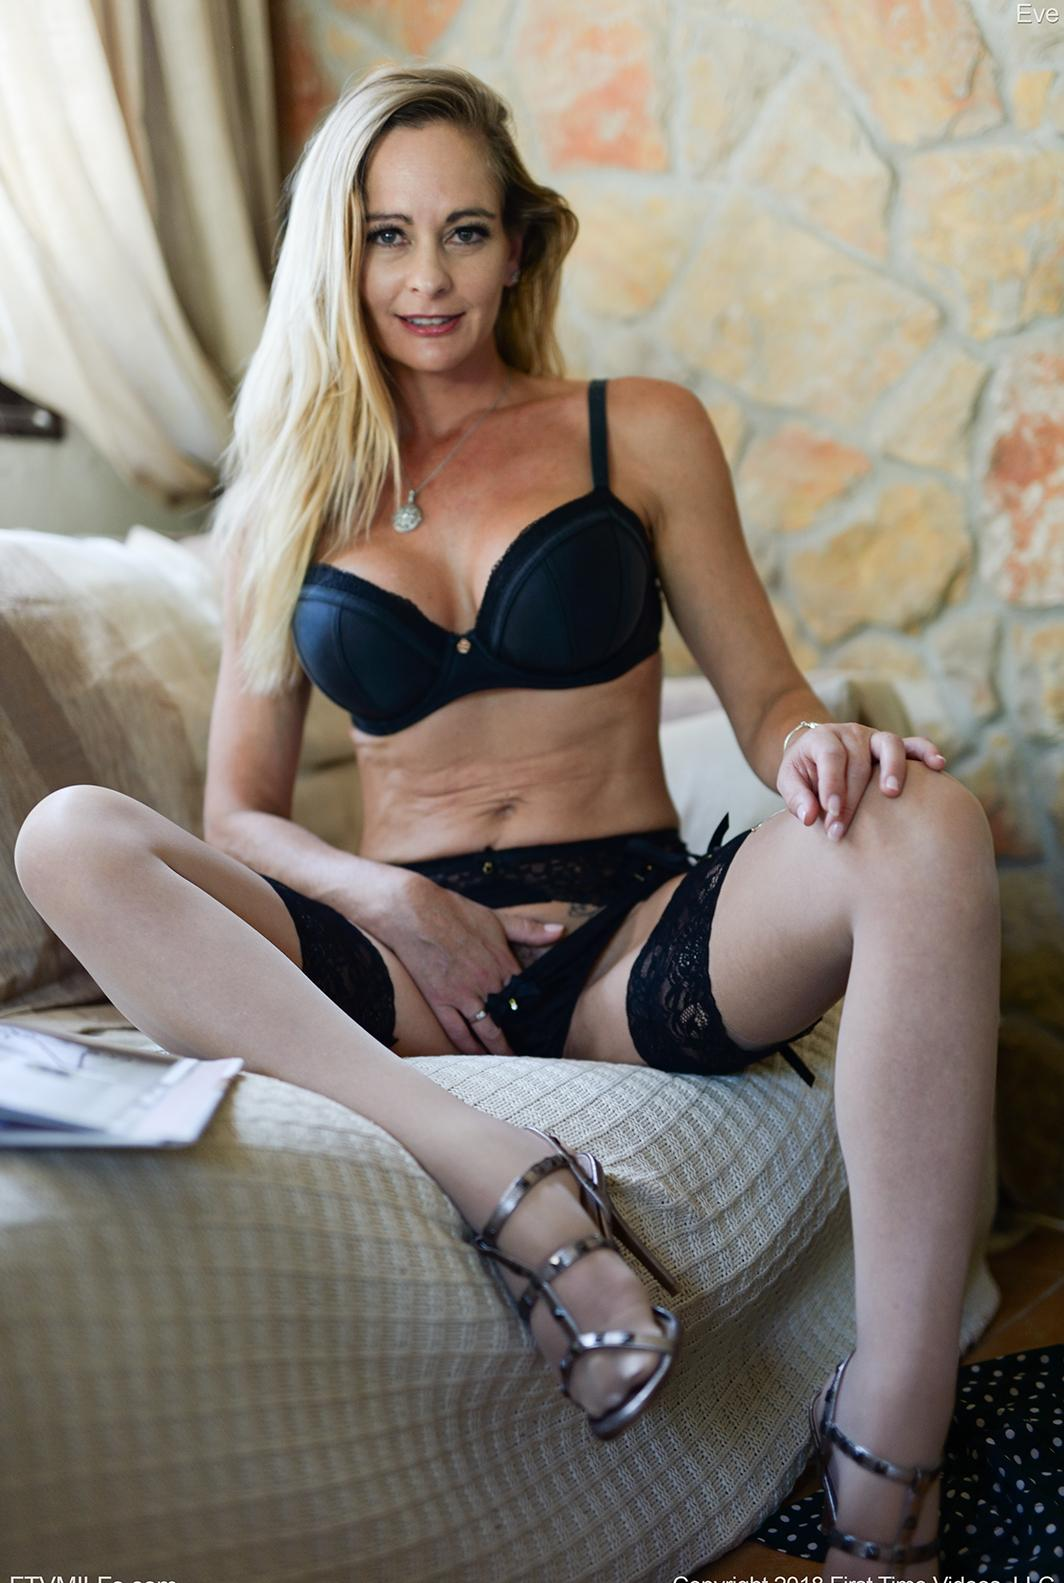 kinky french mom puts something dirty between her legs picture 5